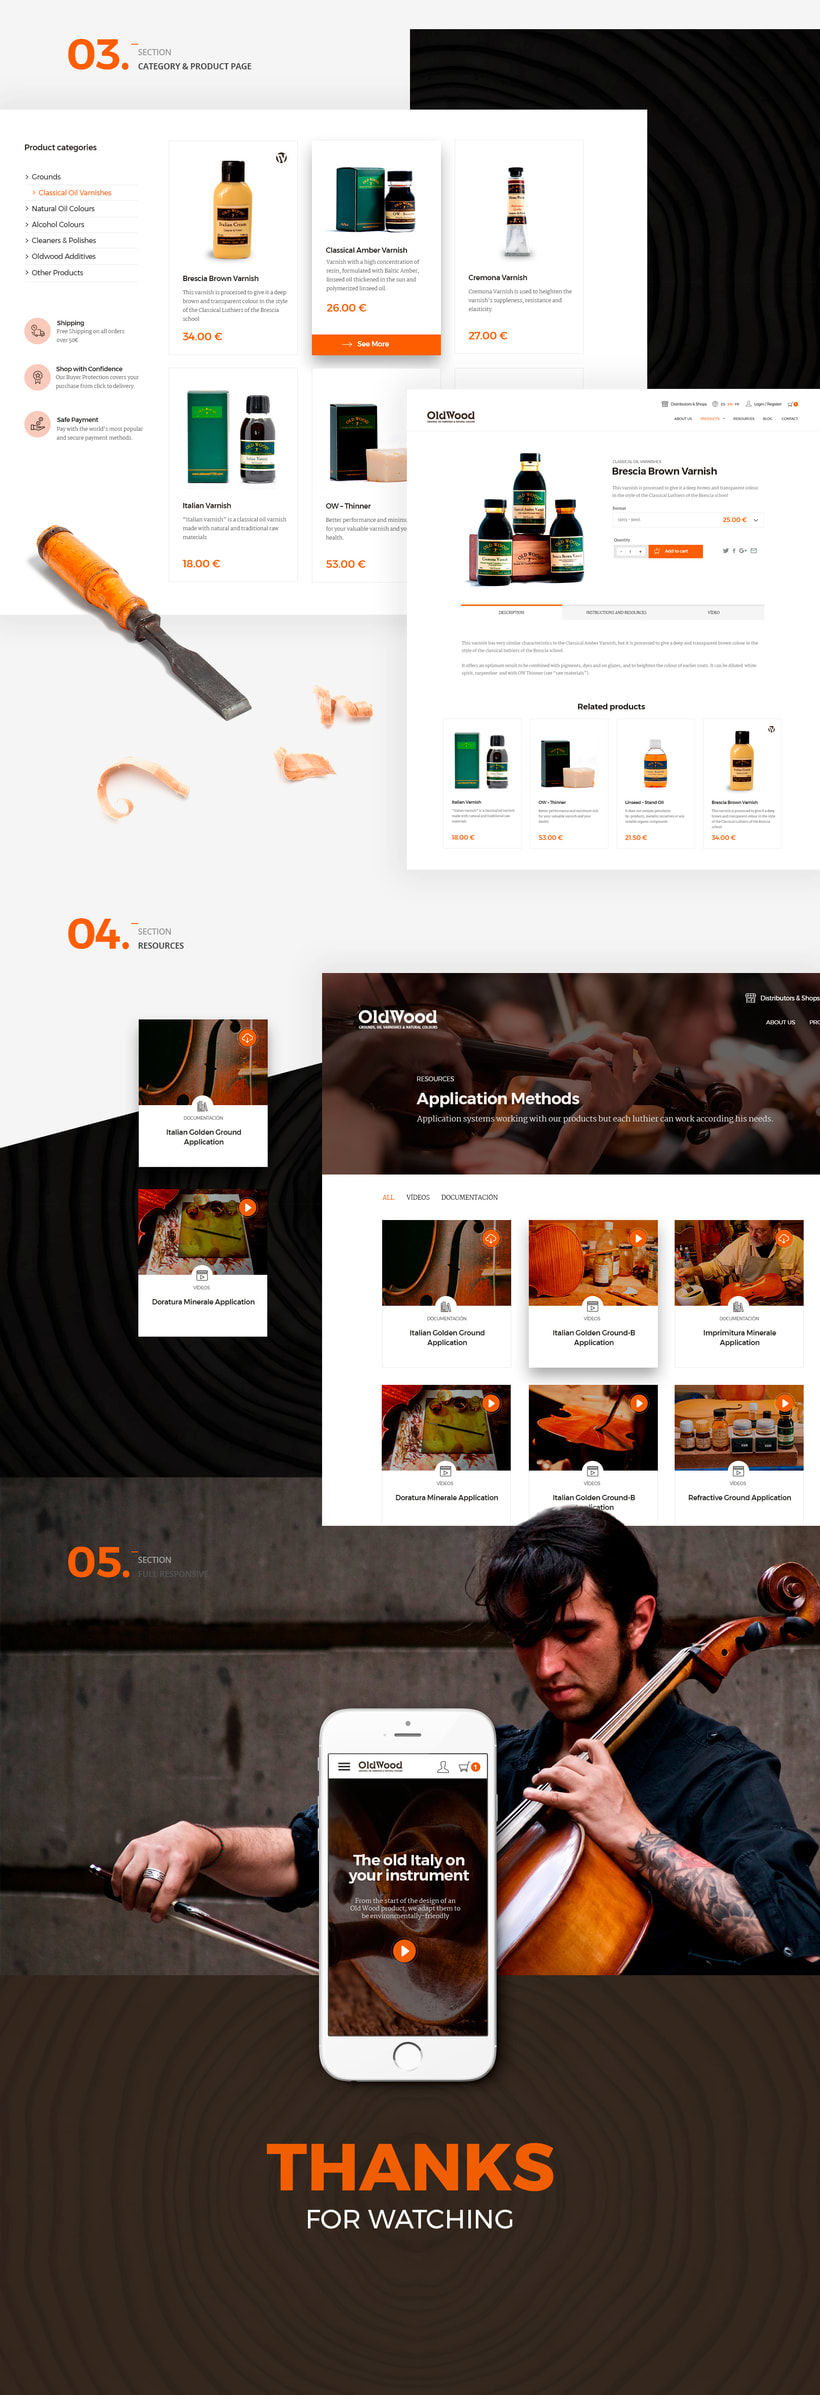 Oldwood new websiteNuevo proyecto 1